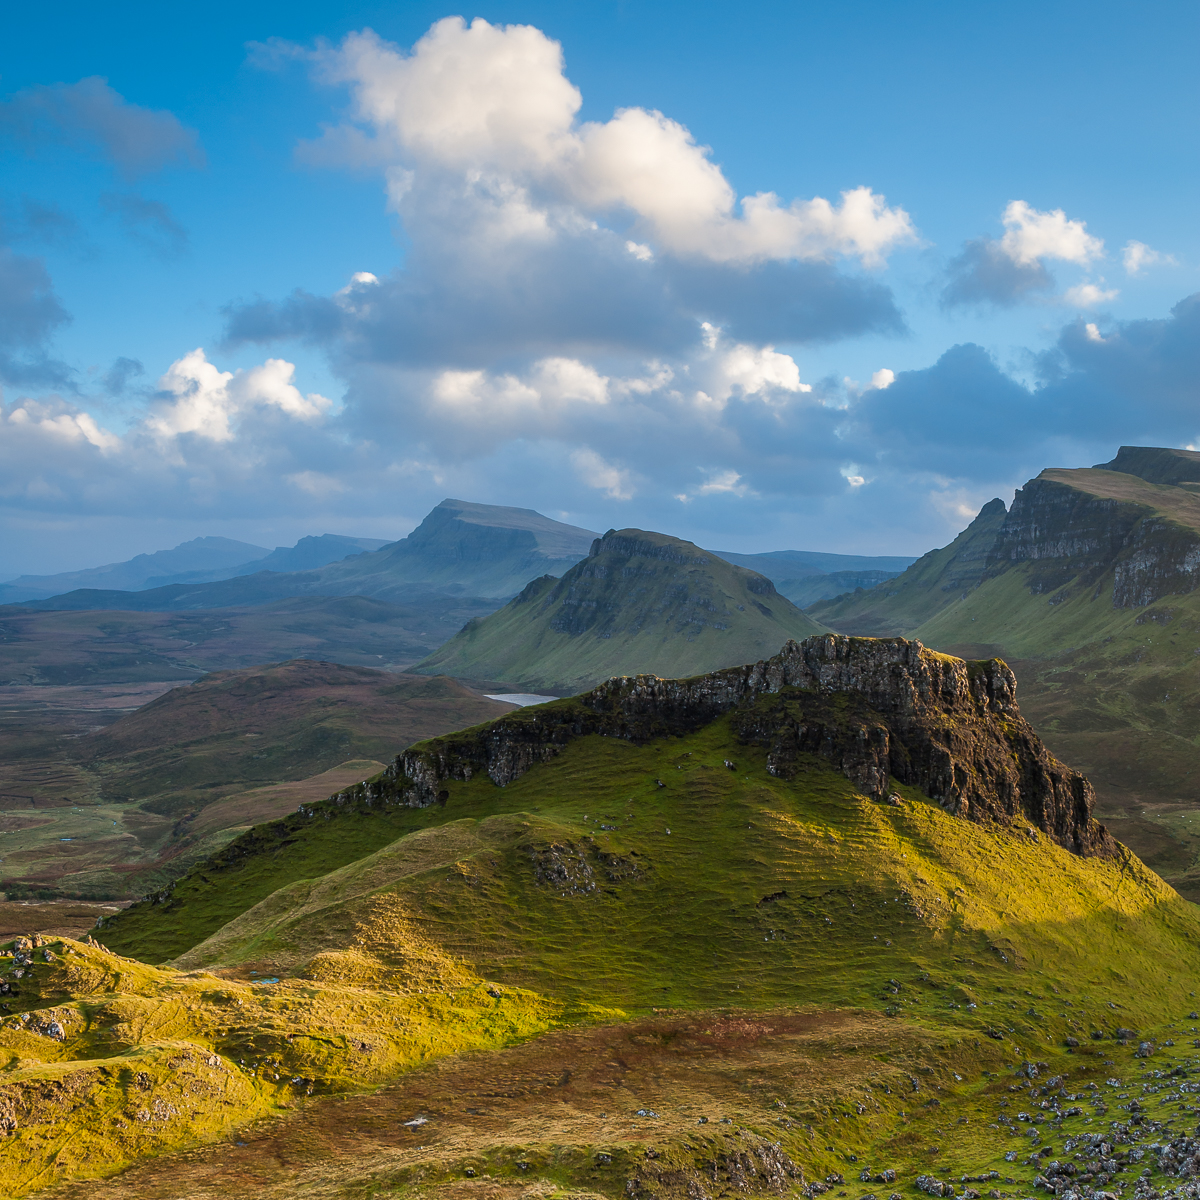 After the storm, Skye